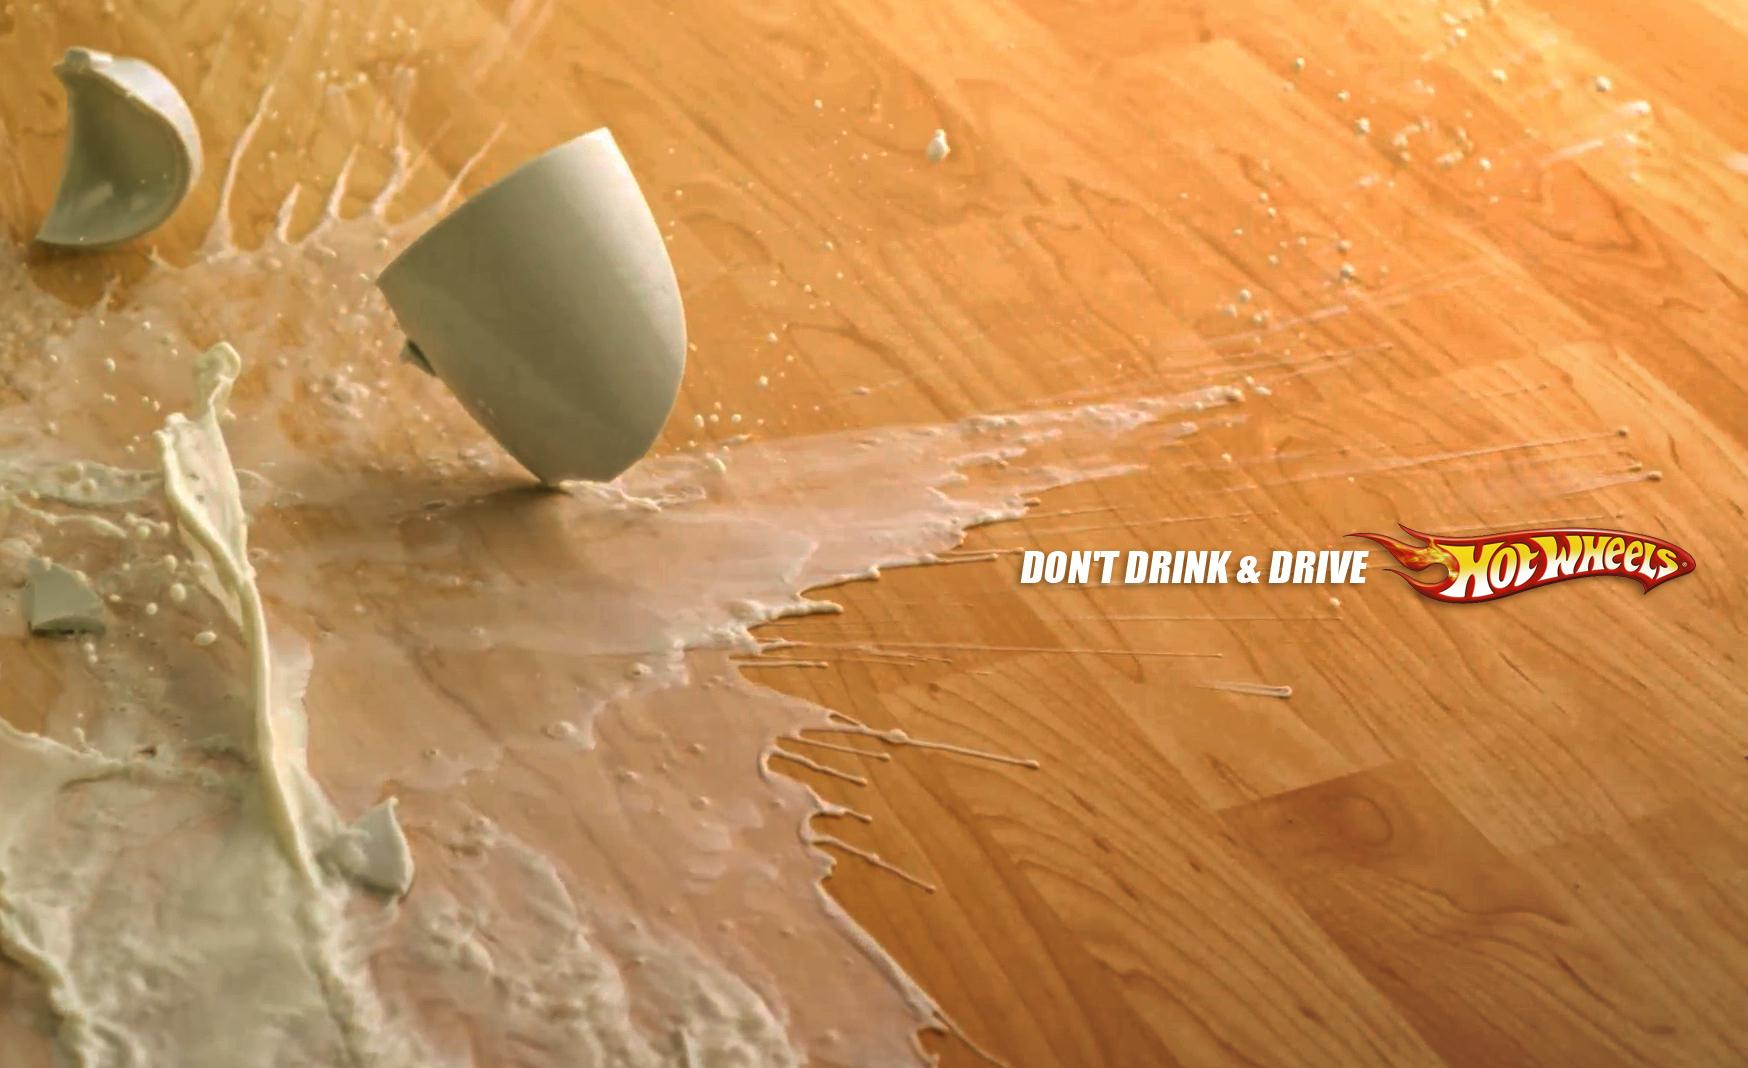 Hot Wheels Print Ad - Spilled Out - Milk